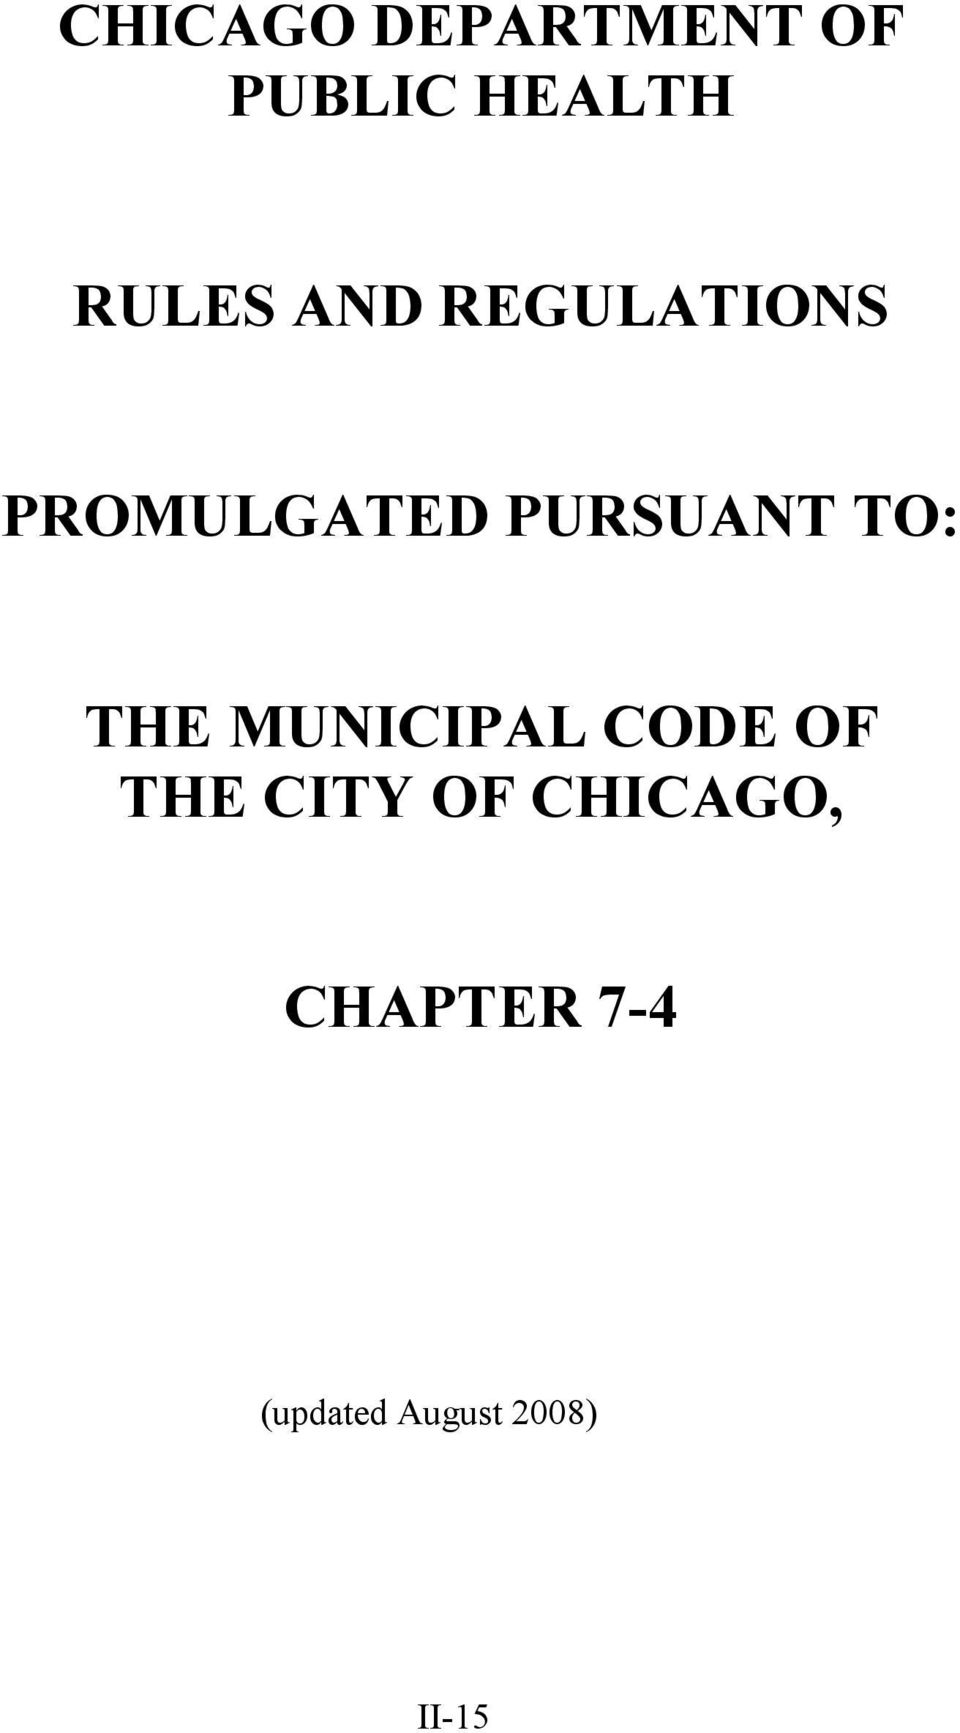 THE MUNICIPAL CODE OF THE CITY OF